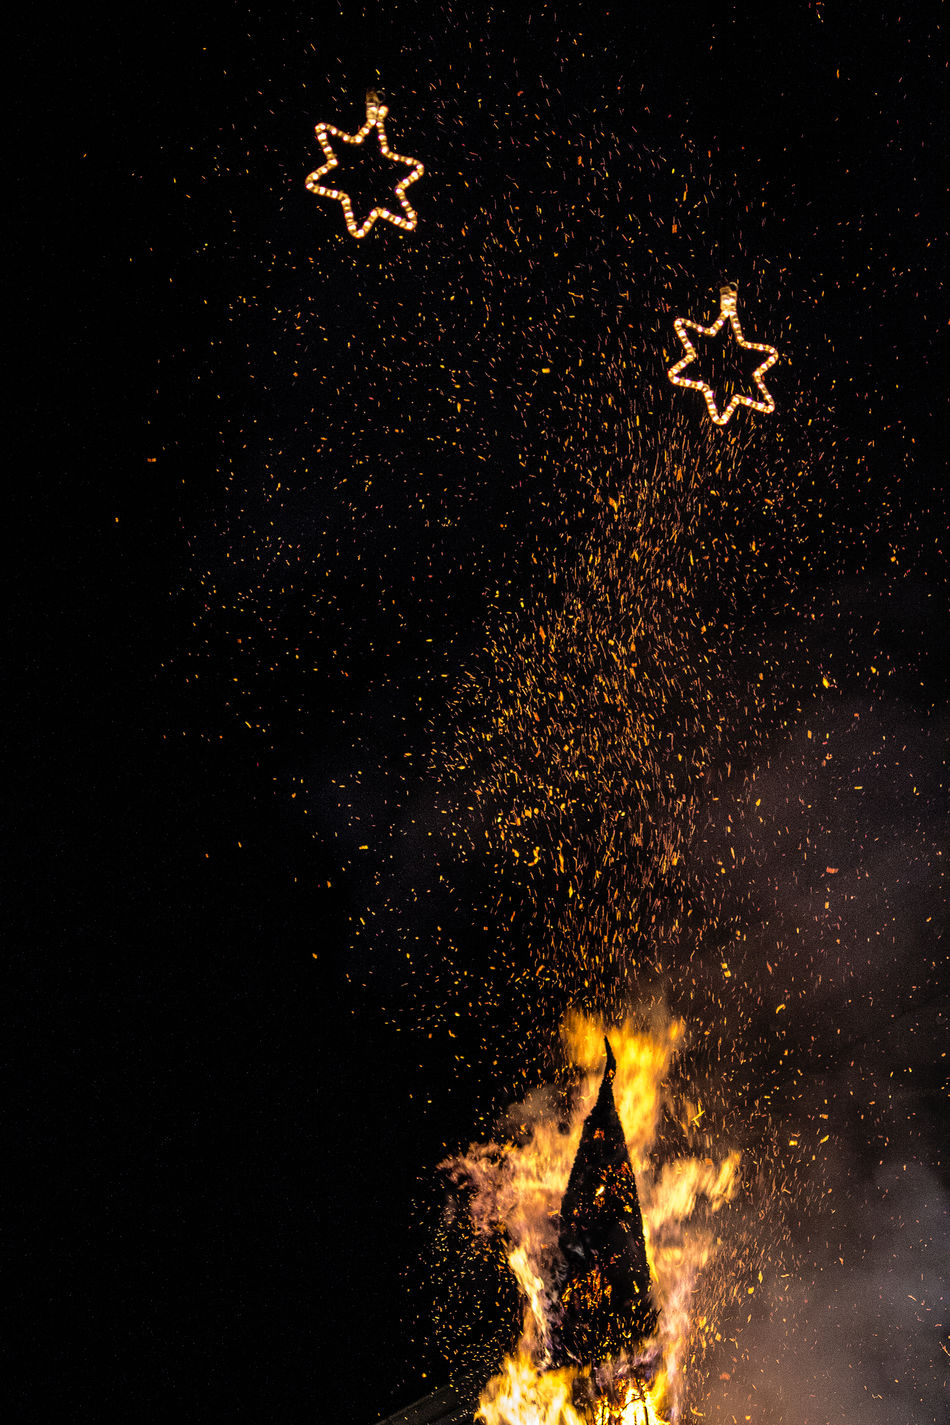 Arts Culture And Entertainment Celebration Christmas' Eve Firework - Man Made Object Firework Display Folk Traditions Illuminated Lights In A Star Shape Night No People Outdoors Sky Sparks Fly EyeEmNewHere